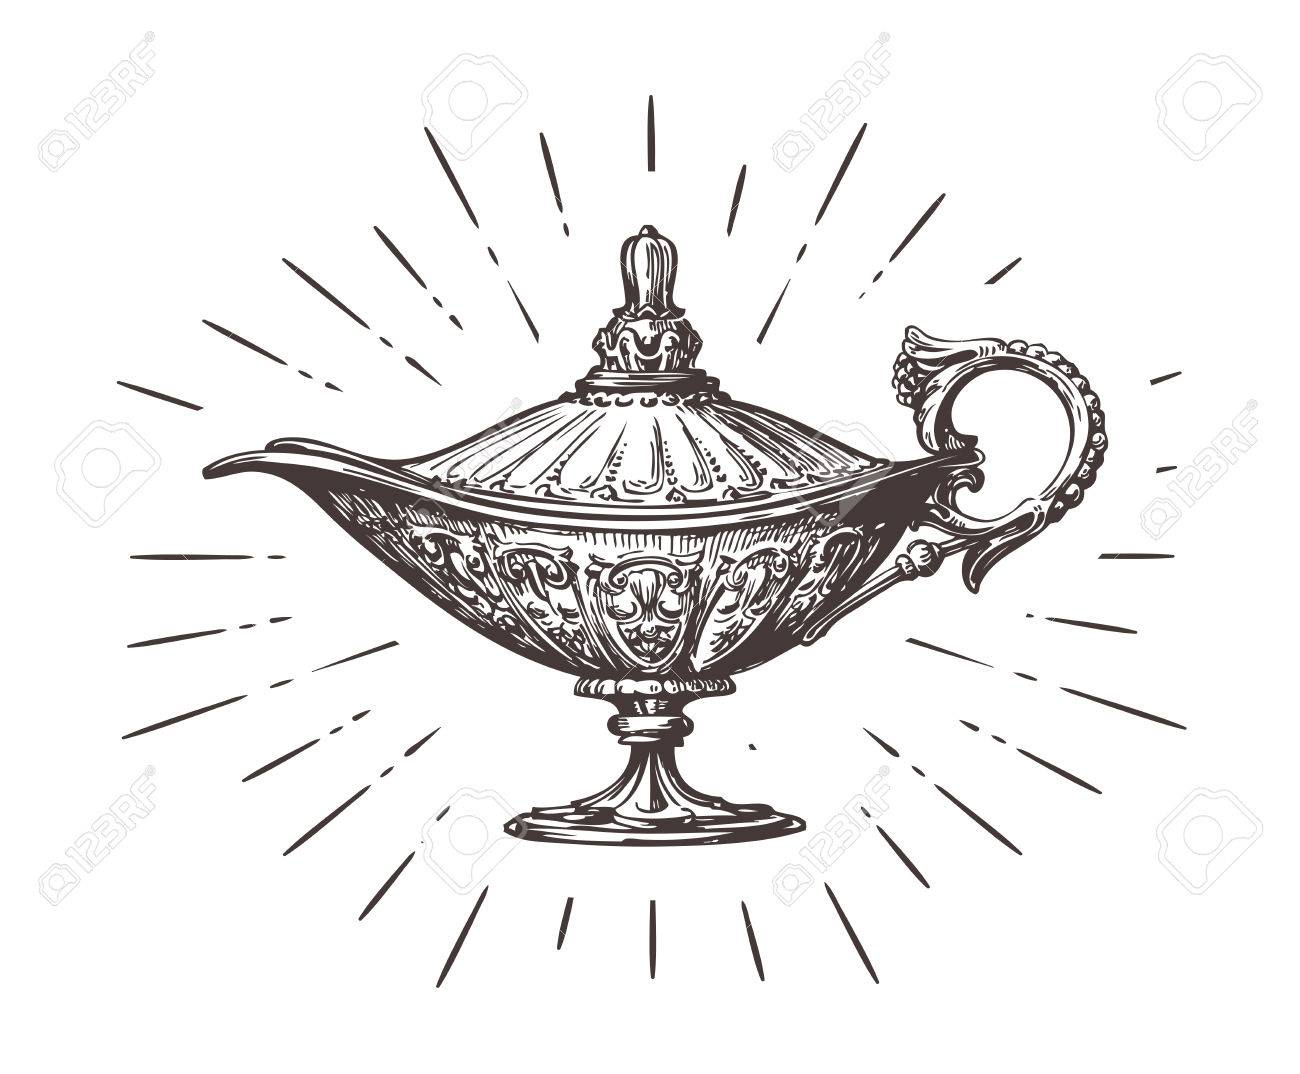 Aladdin magic or genie lamp vintage sketch vector illustration